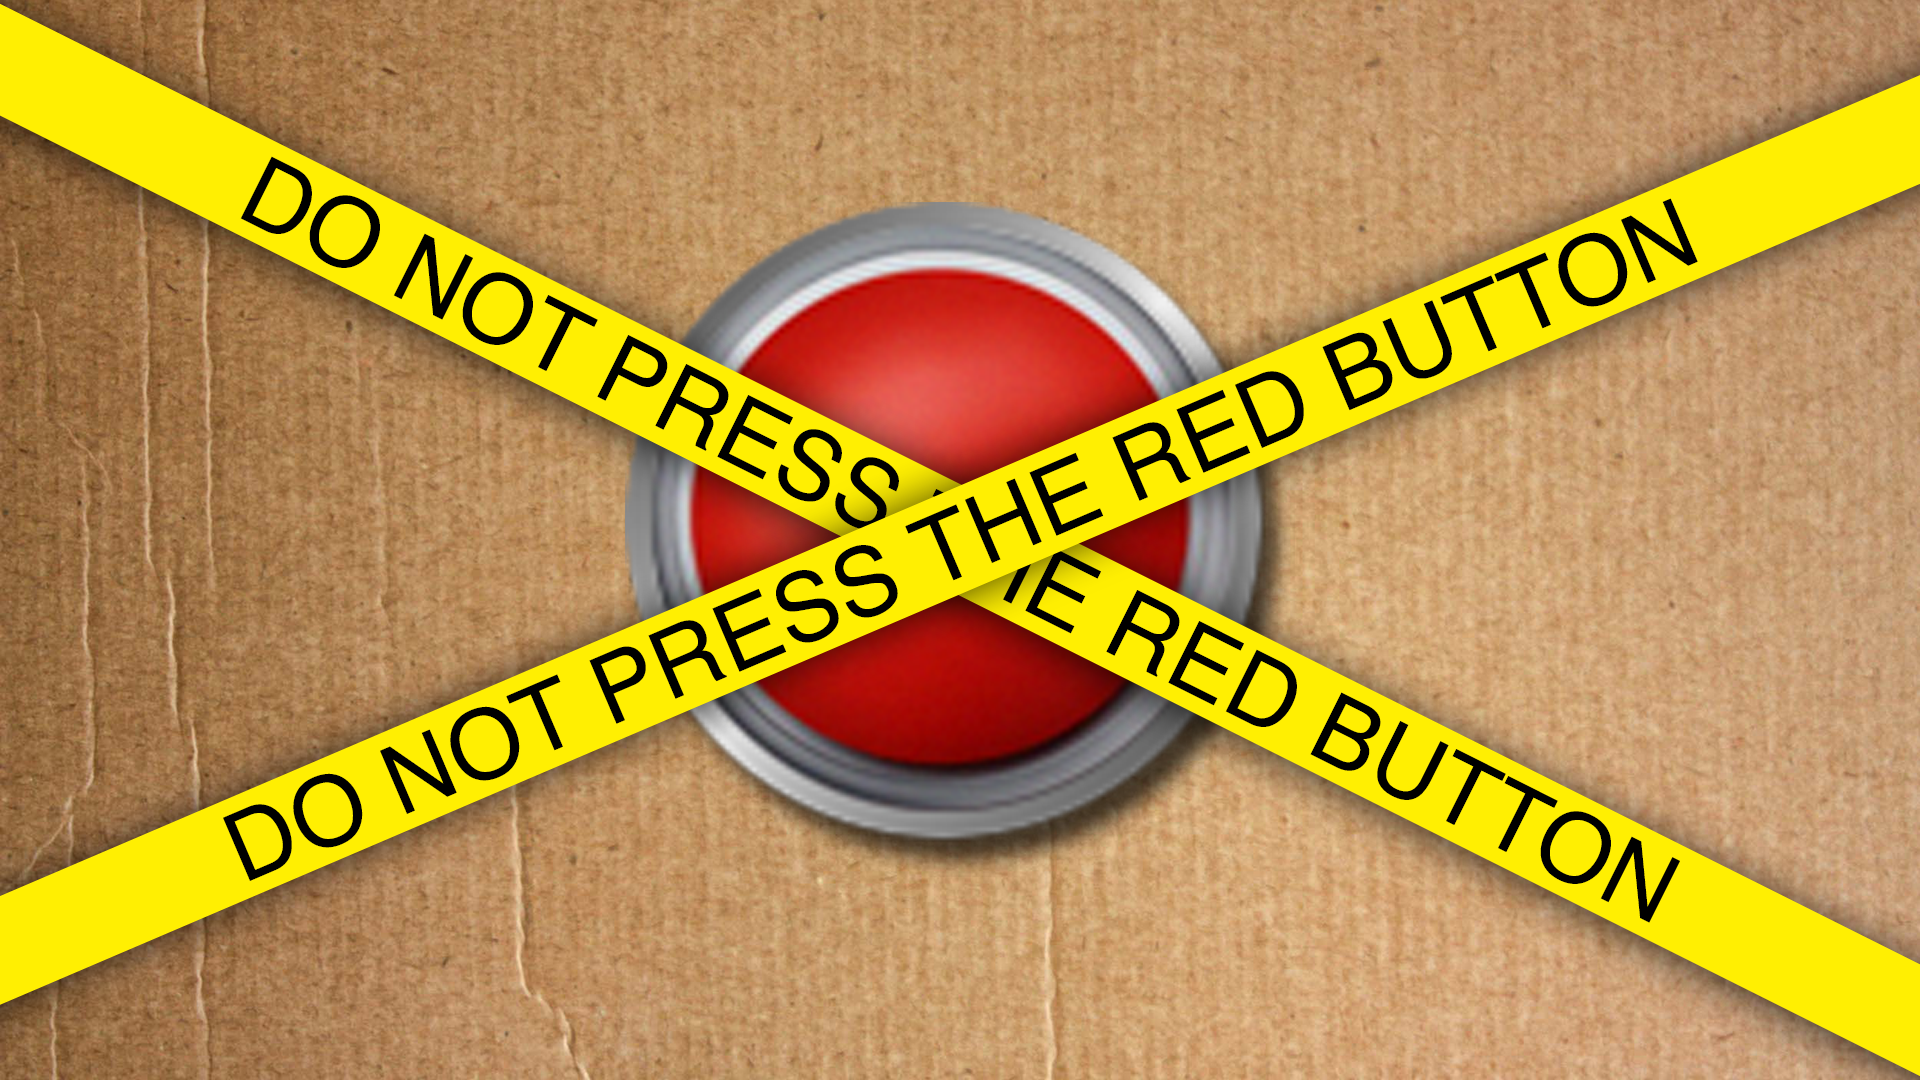 Do not Press the Red Button for TV screenshot 1